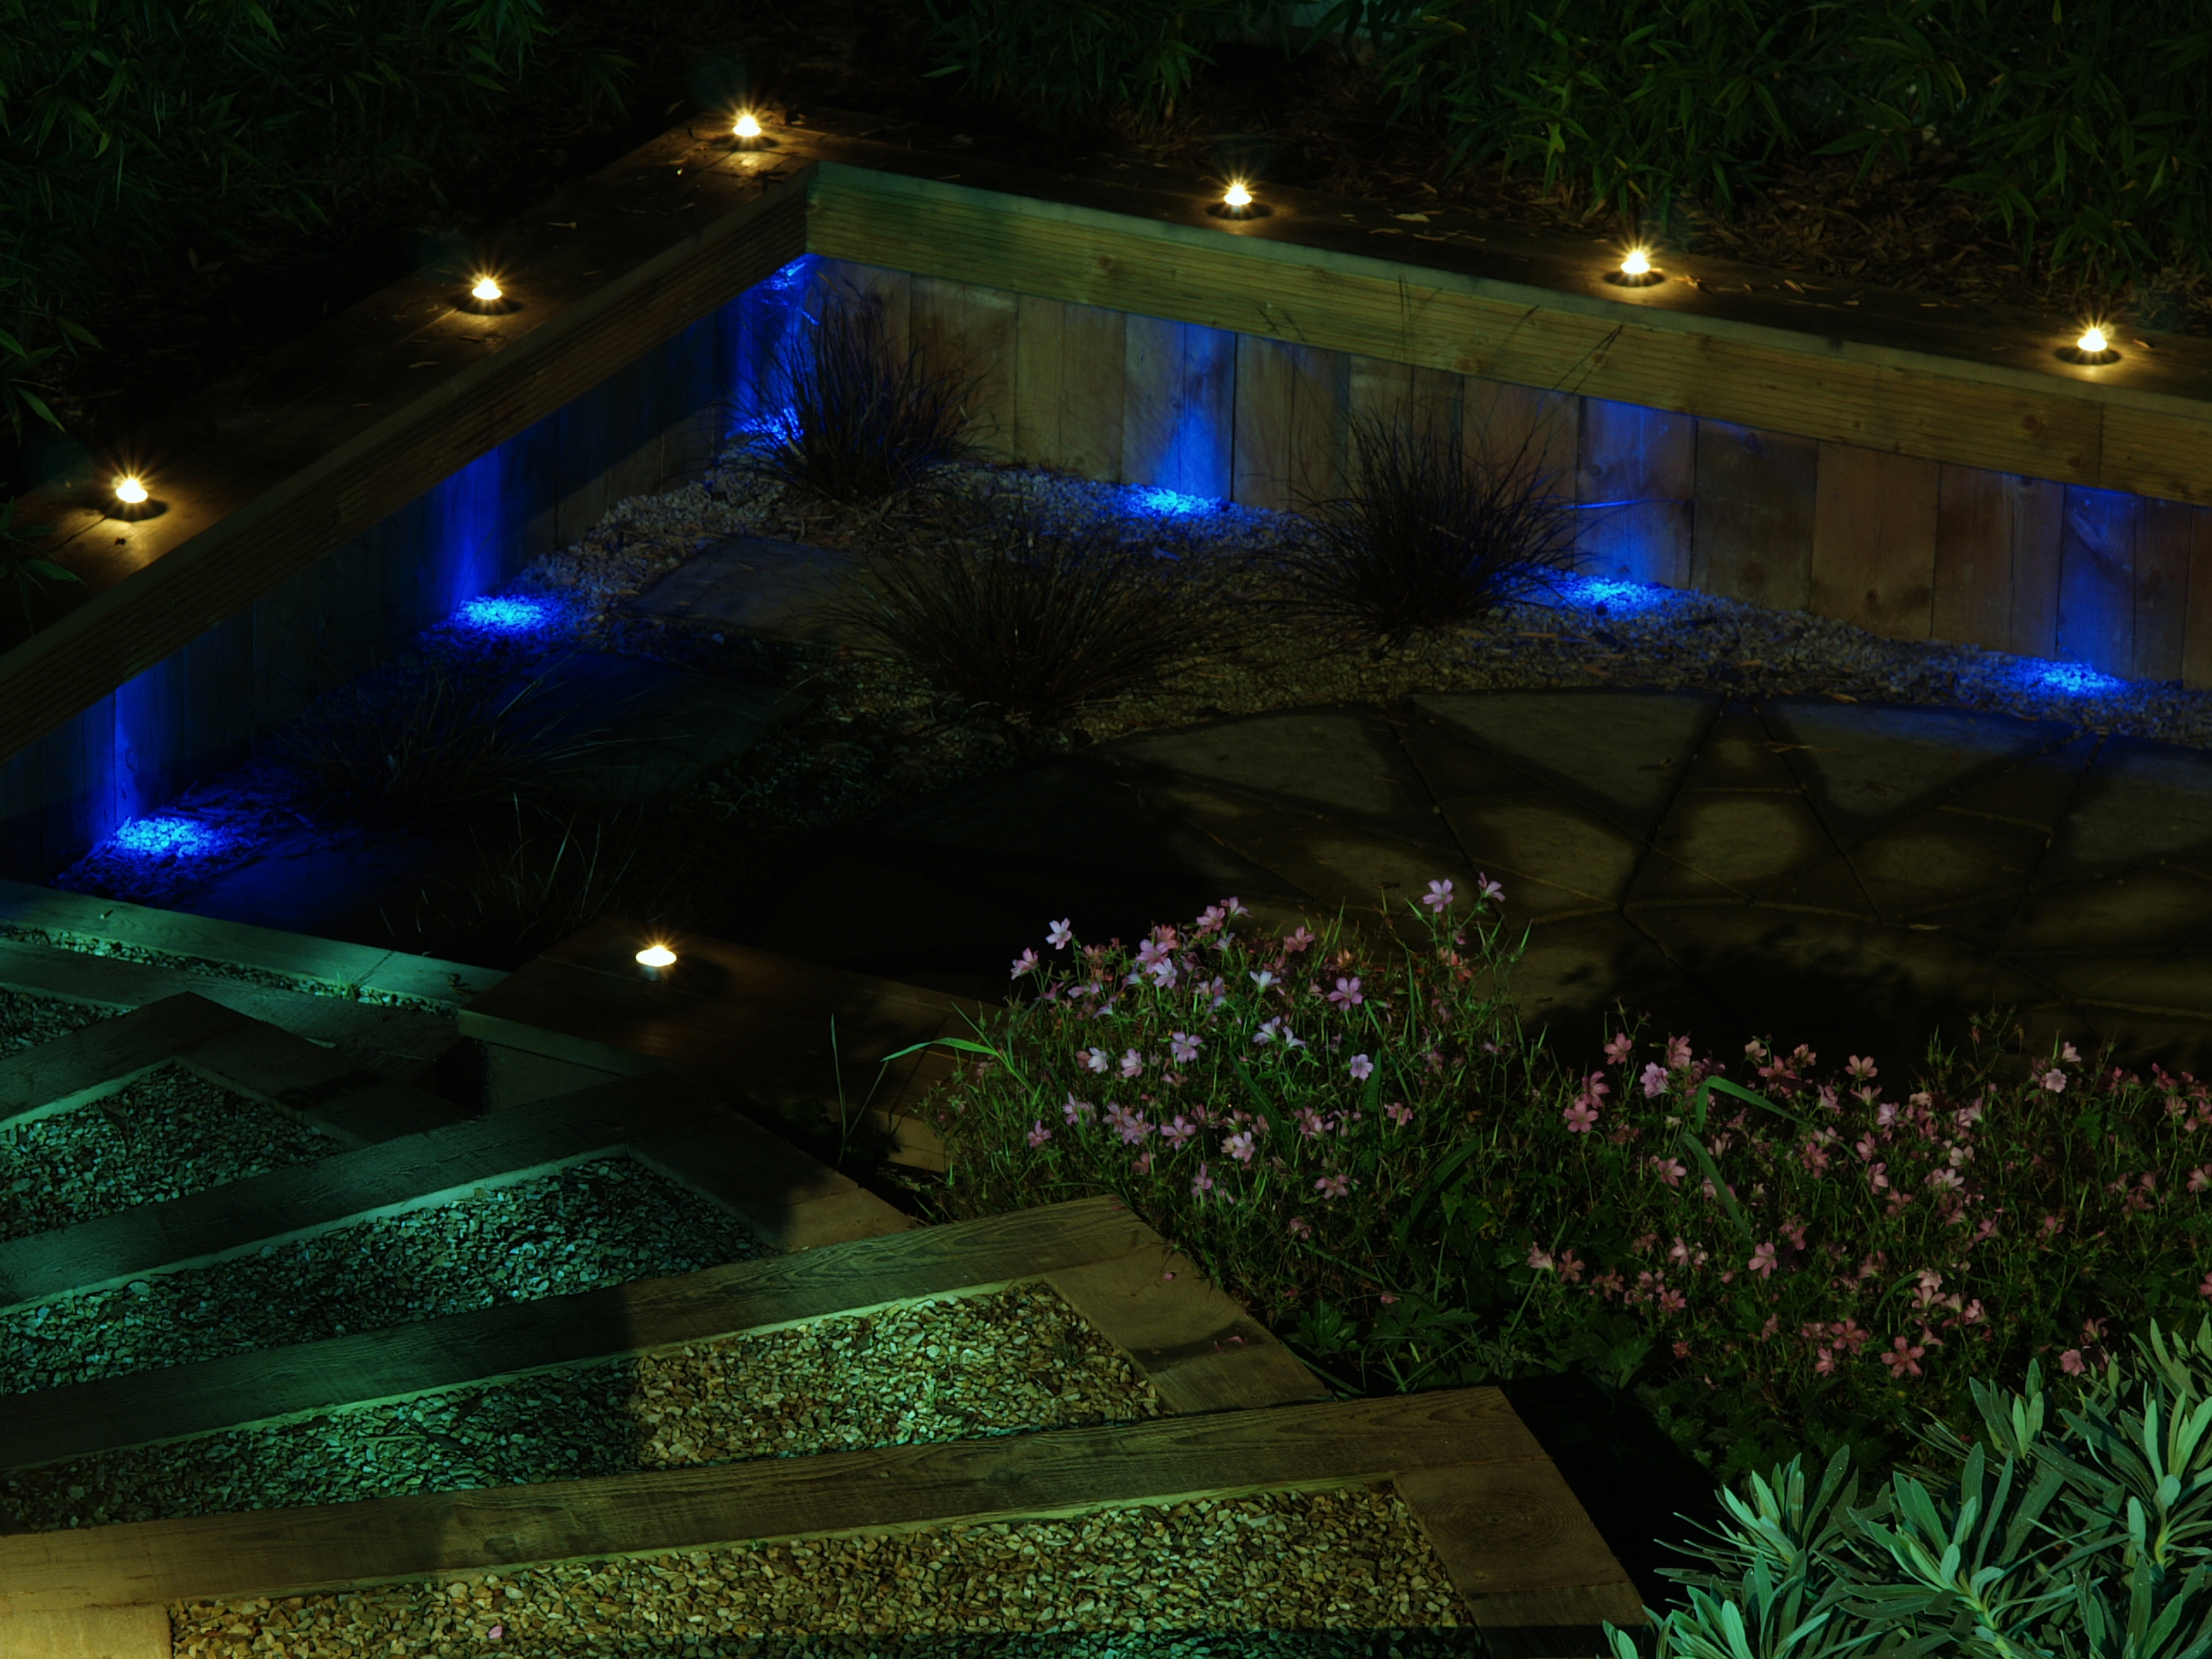 Outdoor garden lighting design services shankill dublin ireland shankill dublin ireland garden with outdoor garden lighting at night time audiocablefo Light database